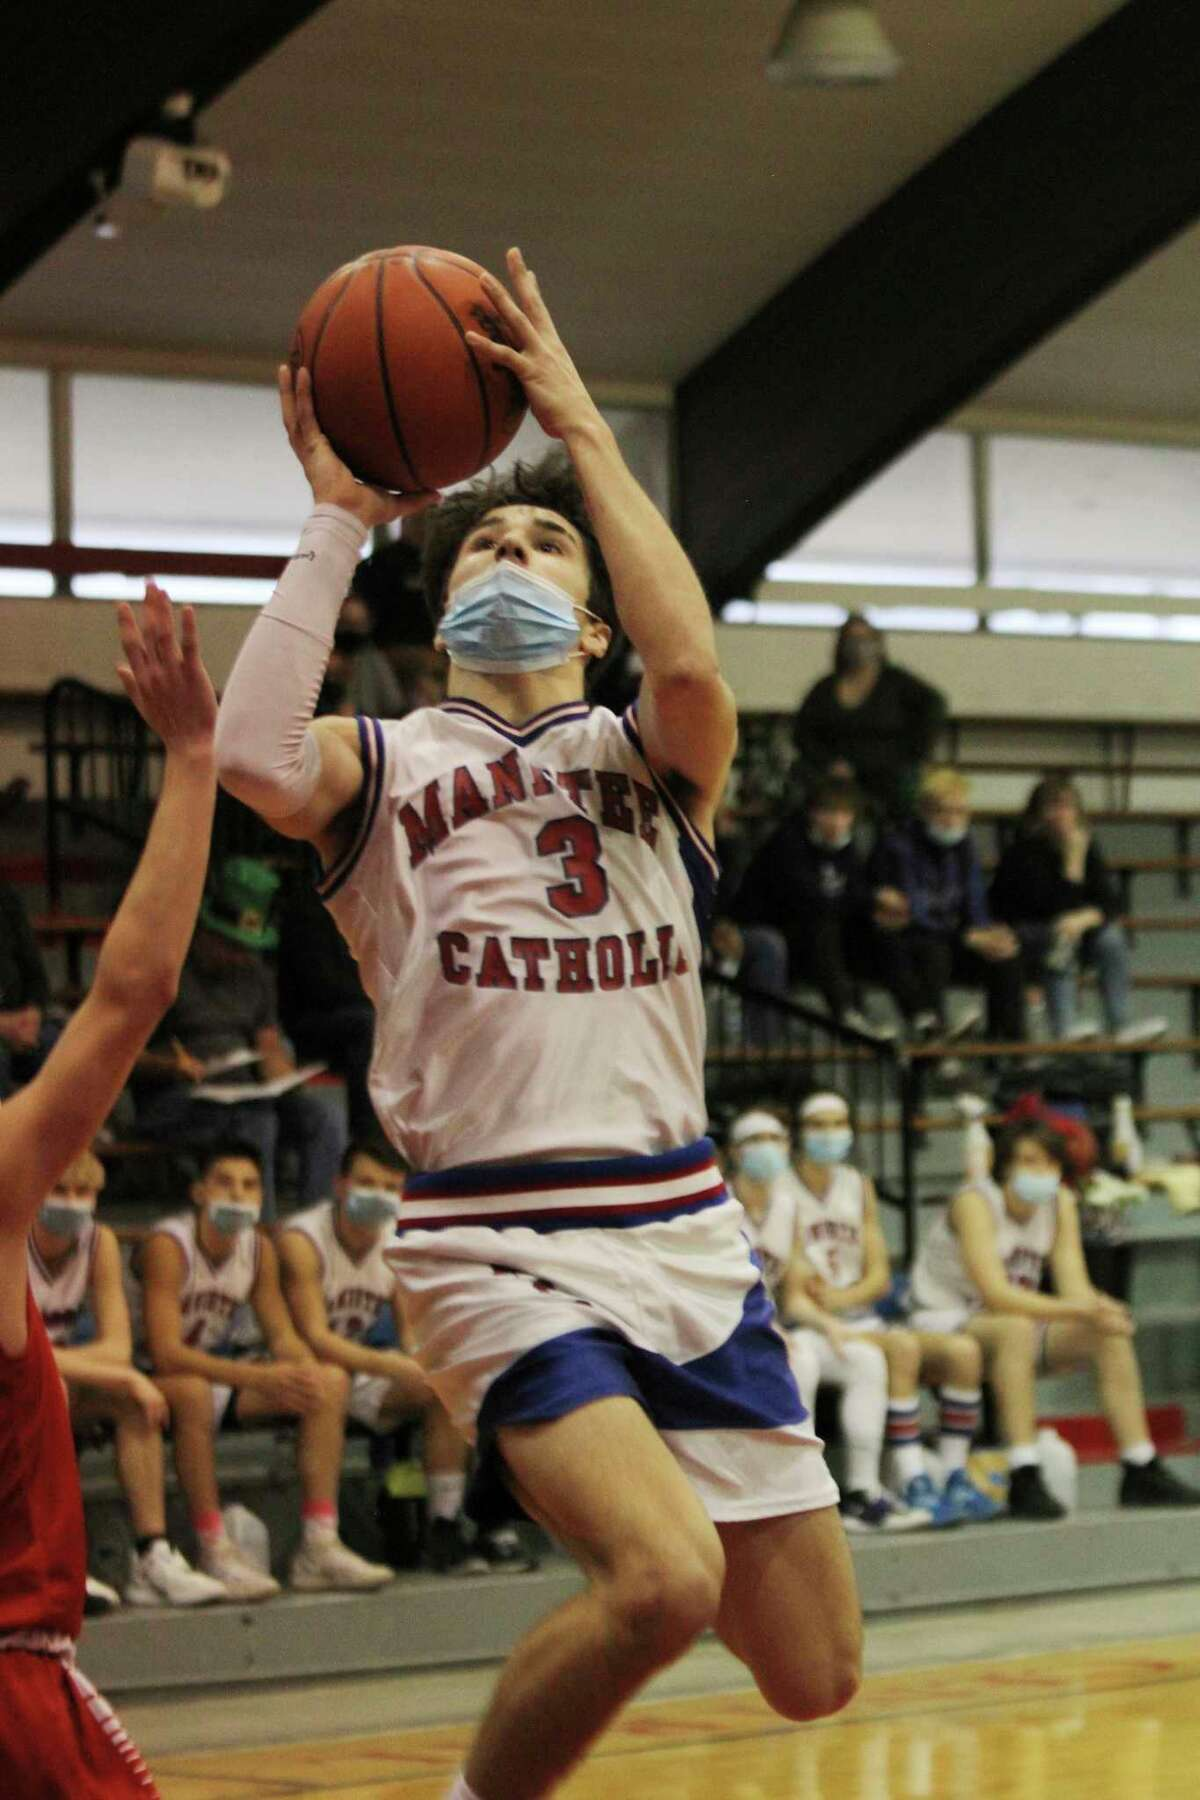 Manistee Catholic Central's Mateo Barnett averaged 17.4 points, five rebounds and 3.5 assists a game throughout the season. (News Advocate file photo)